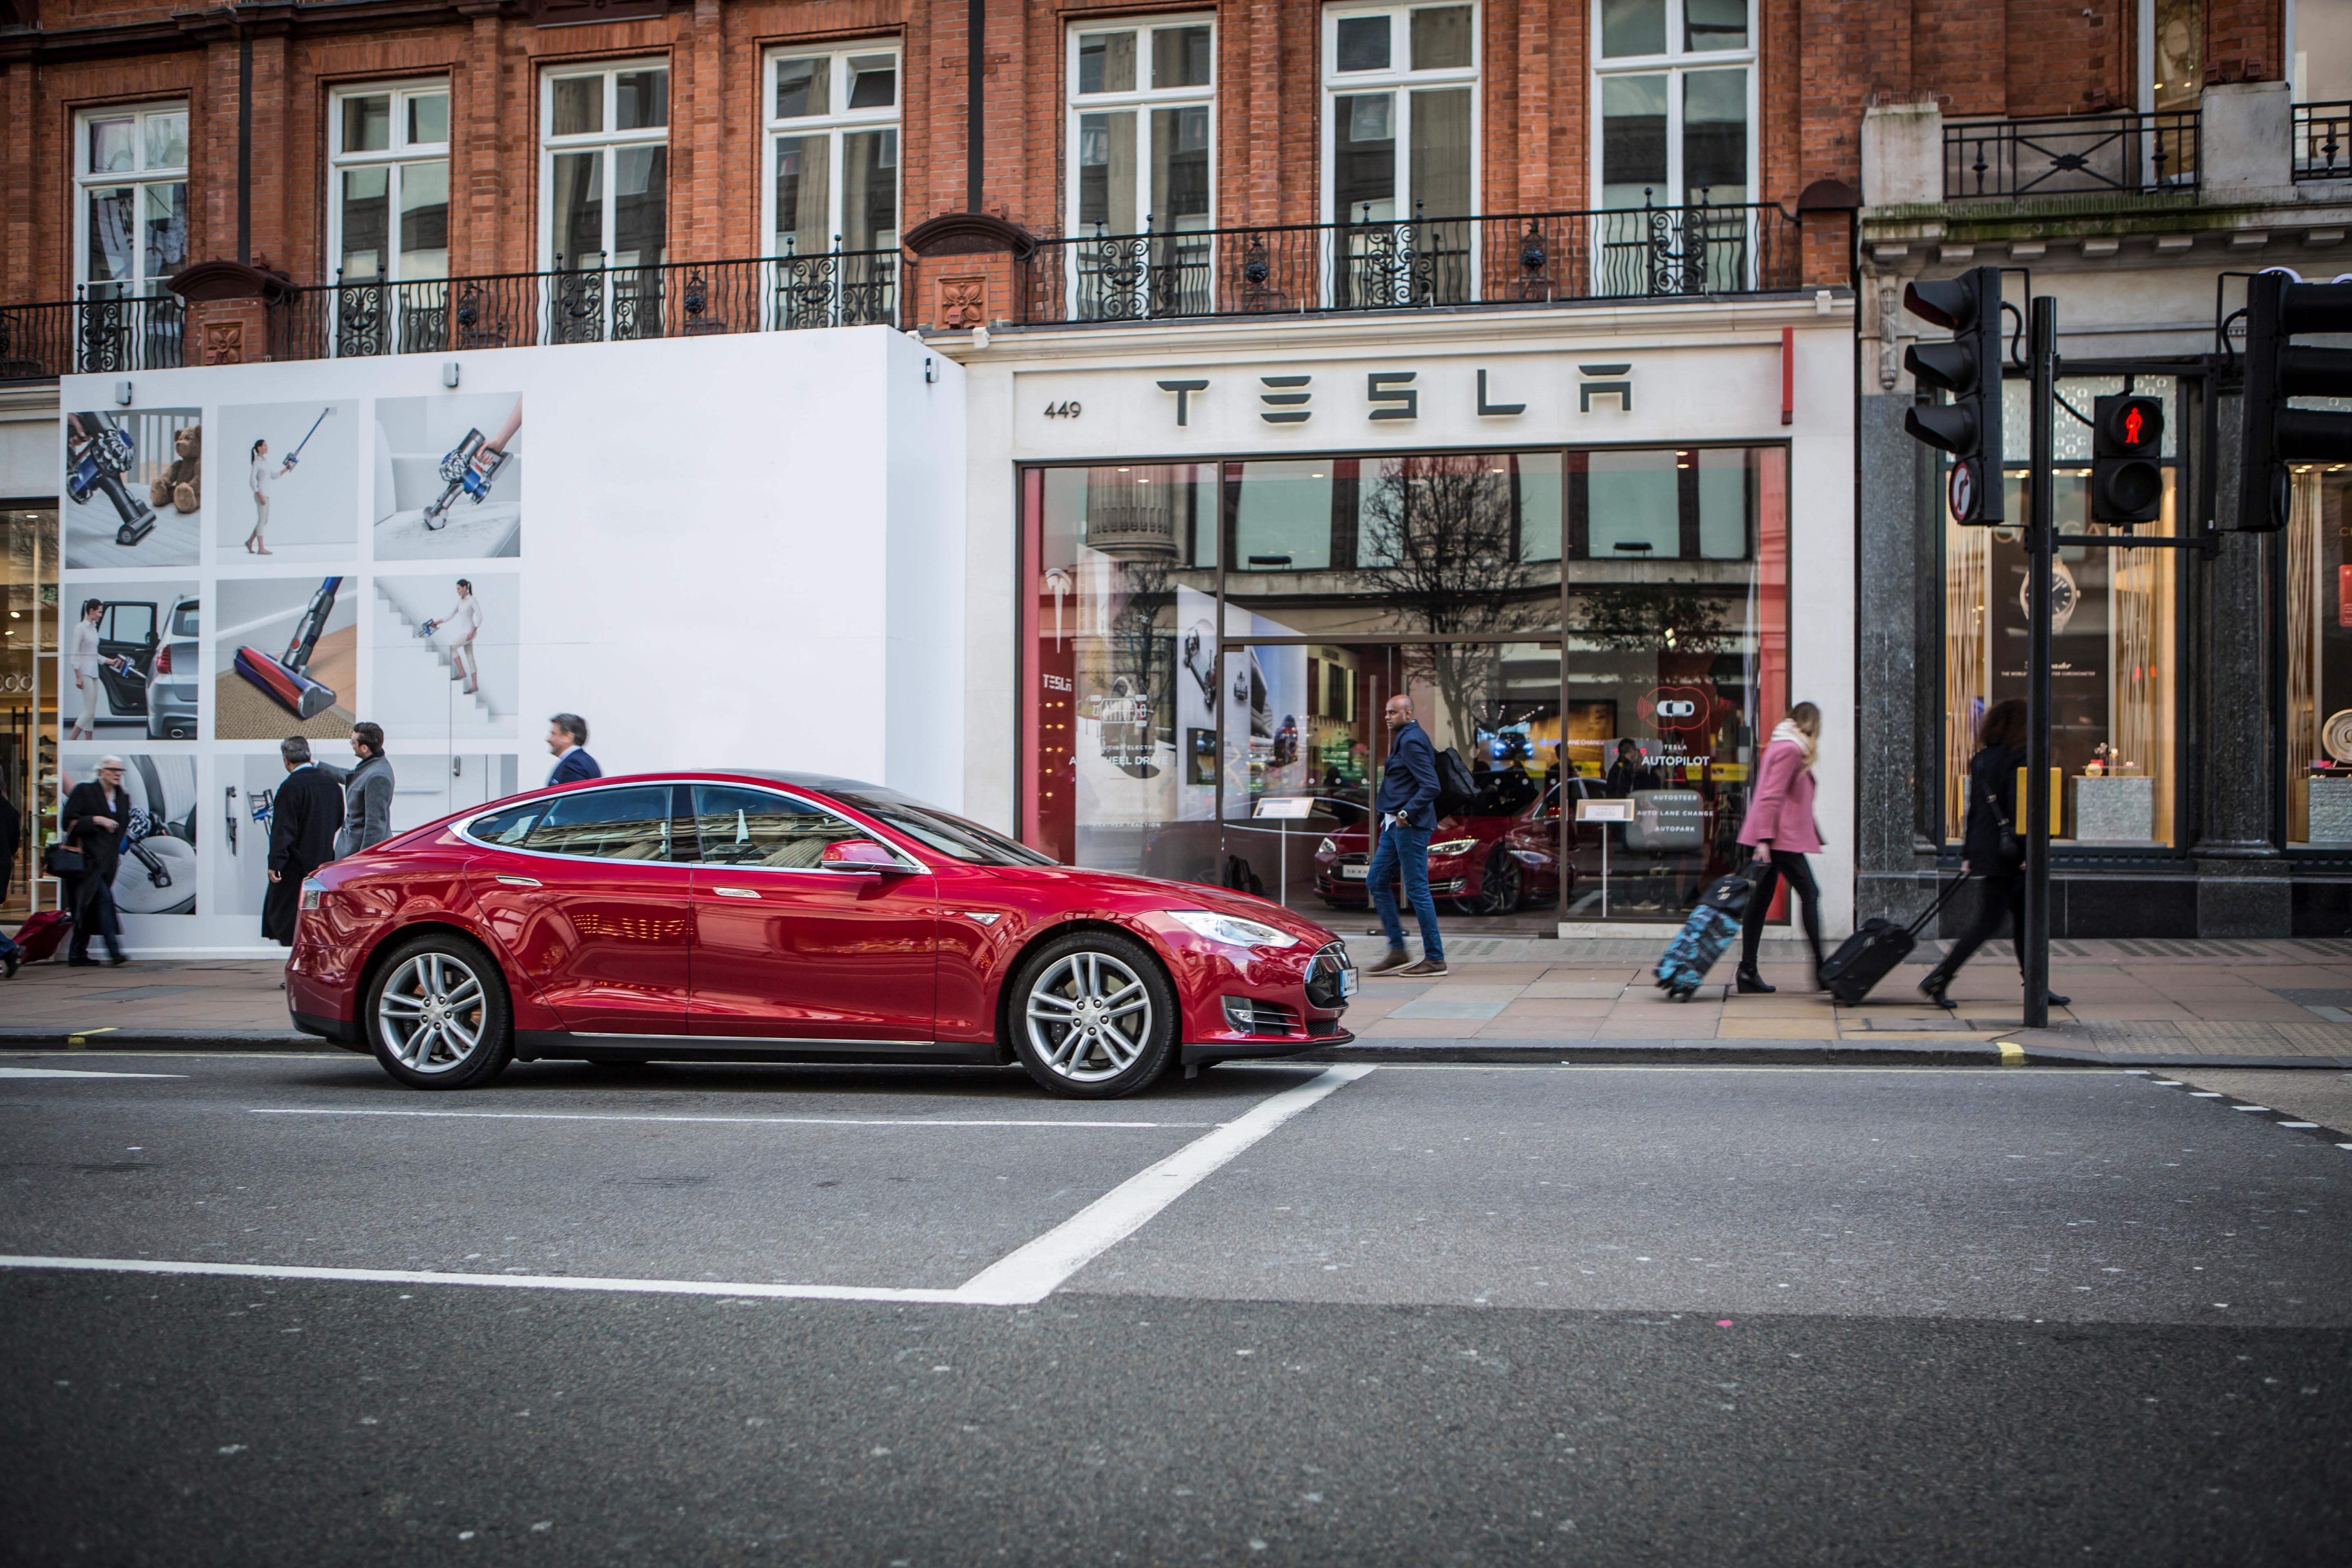 The tesla model s parked outside the company s flagship oxford